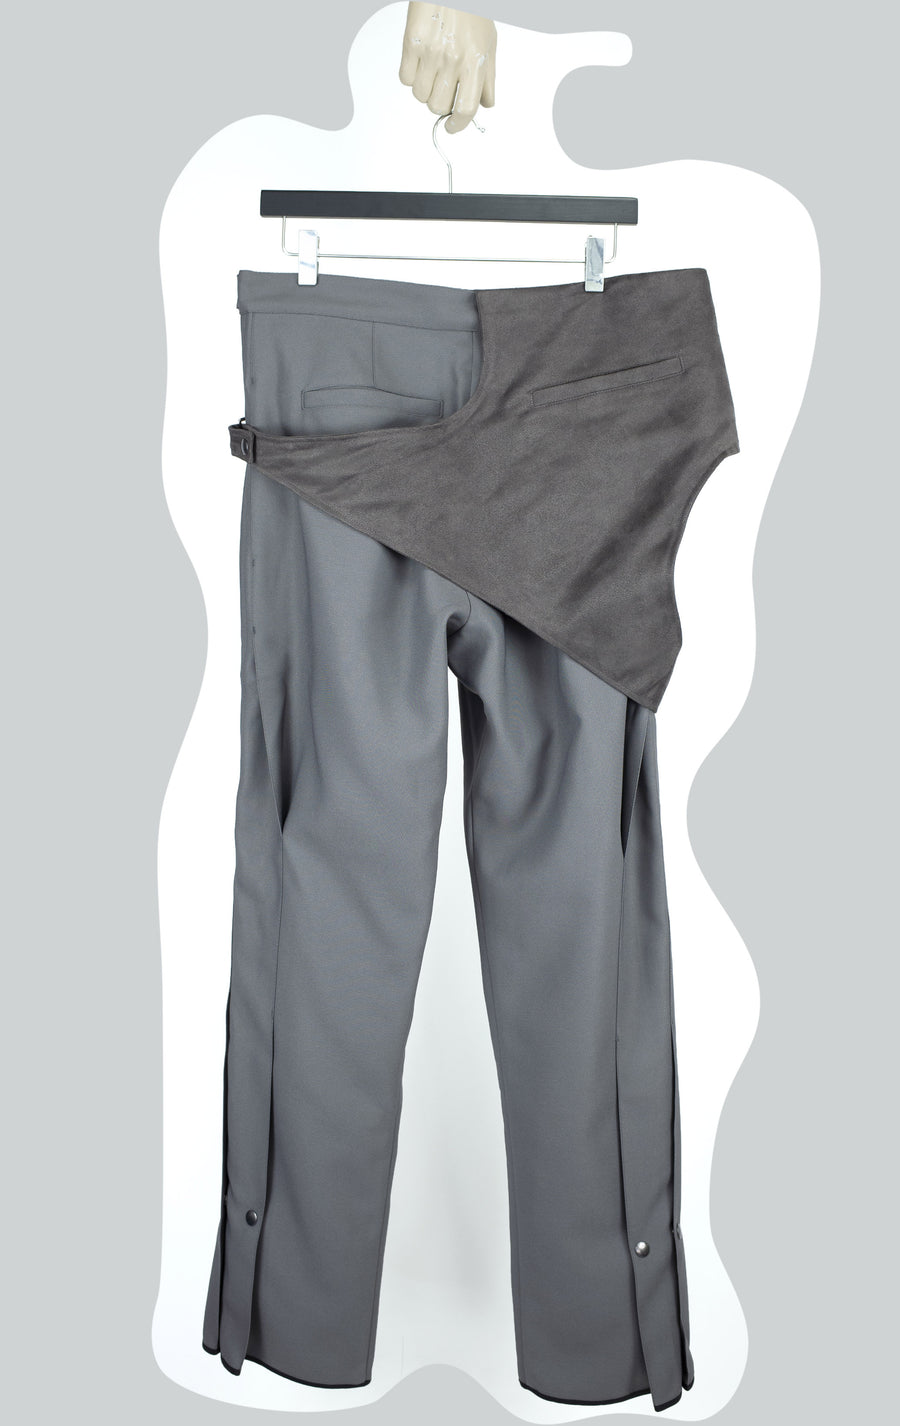 00092020 REVERSIBLE PLEAT OVERALLS GREY